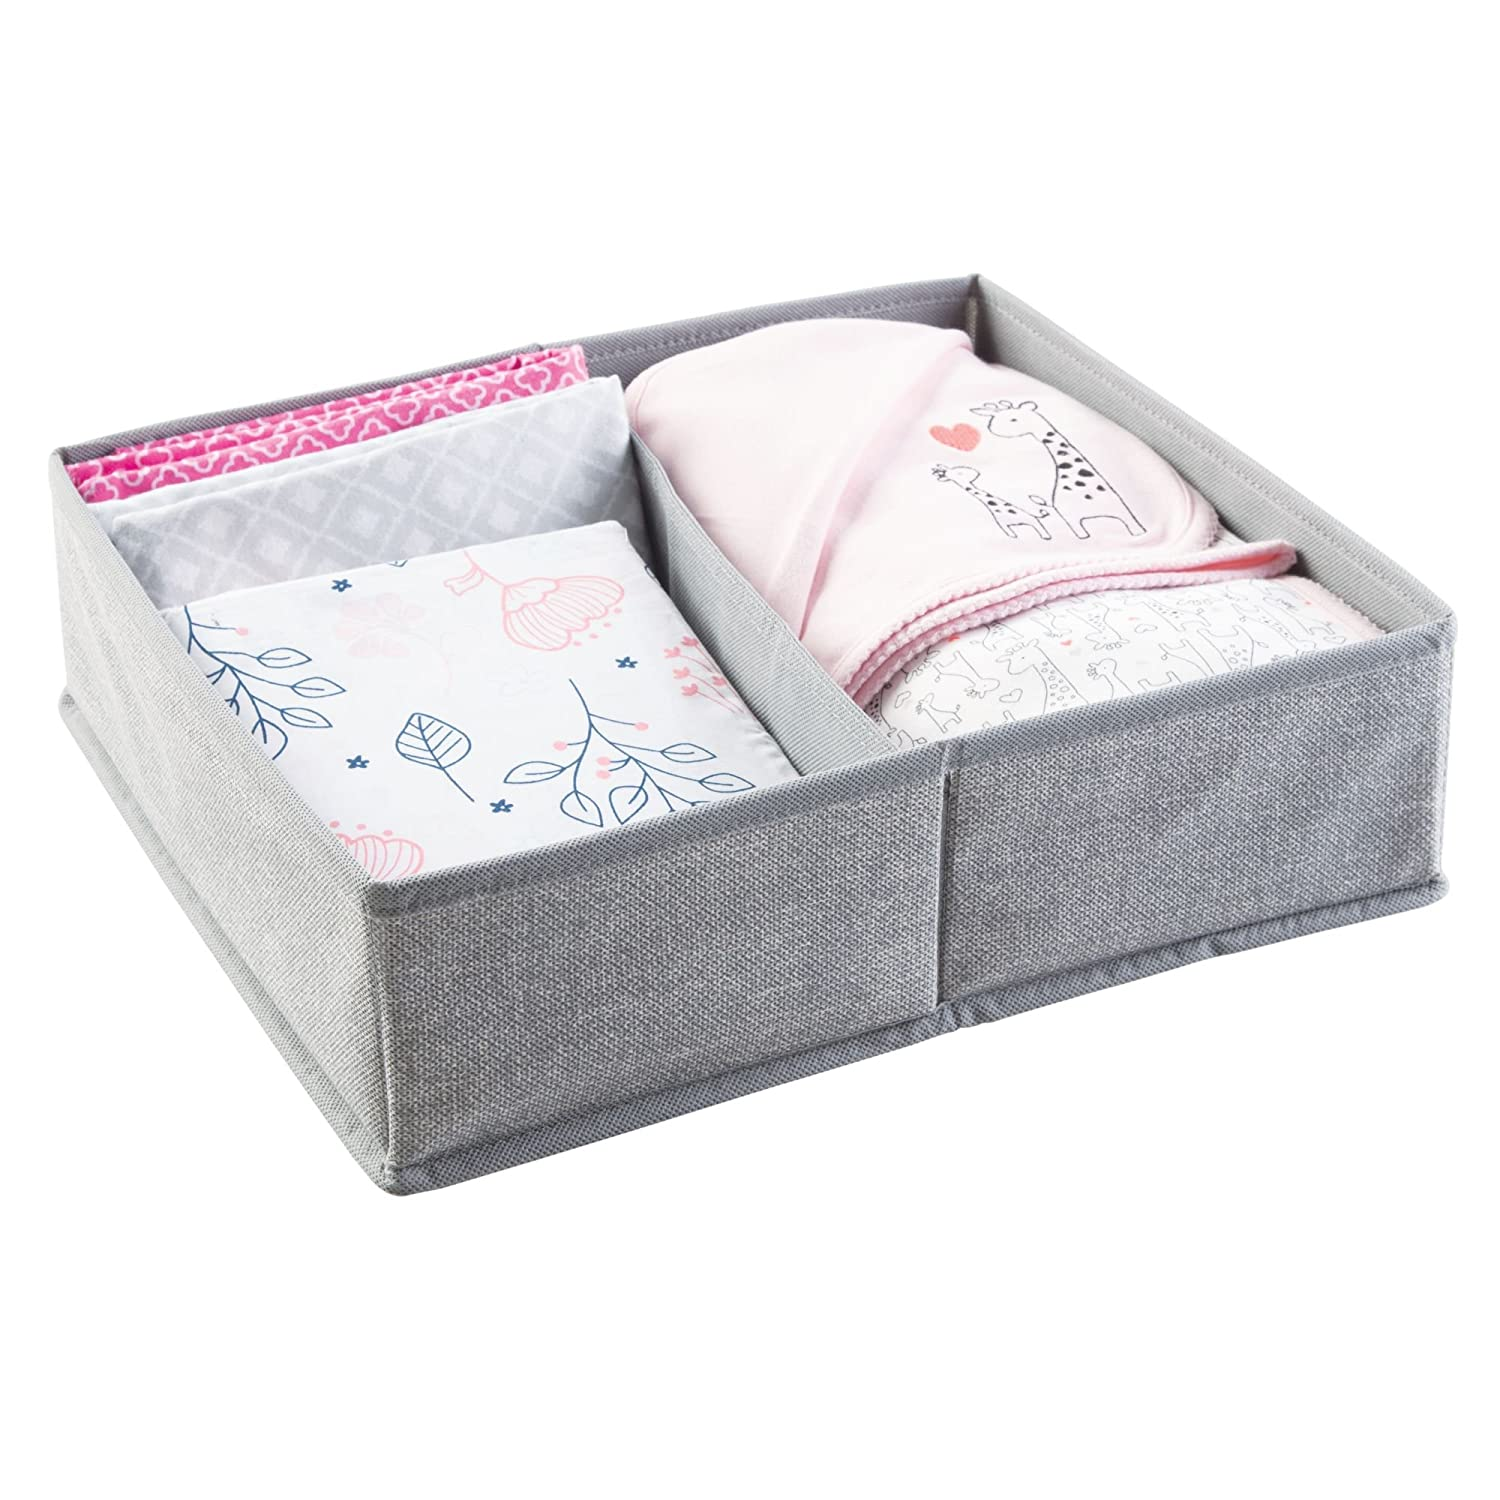 mDesign Fabric Dresser Drawer Insert - 2 Compartment Baby Organiser - Large Fabric Storage Boxes - Ideal Wardrobe Storage Solutions for Nappies, Toys, Wipes, and More - Grey MetroDecor 1435MDB